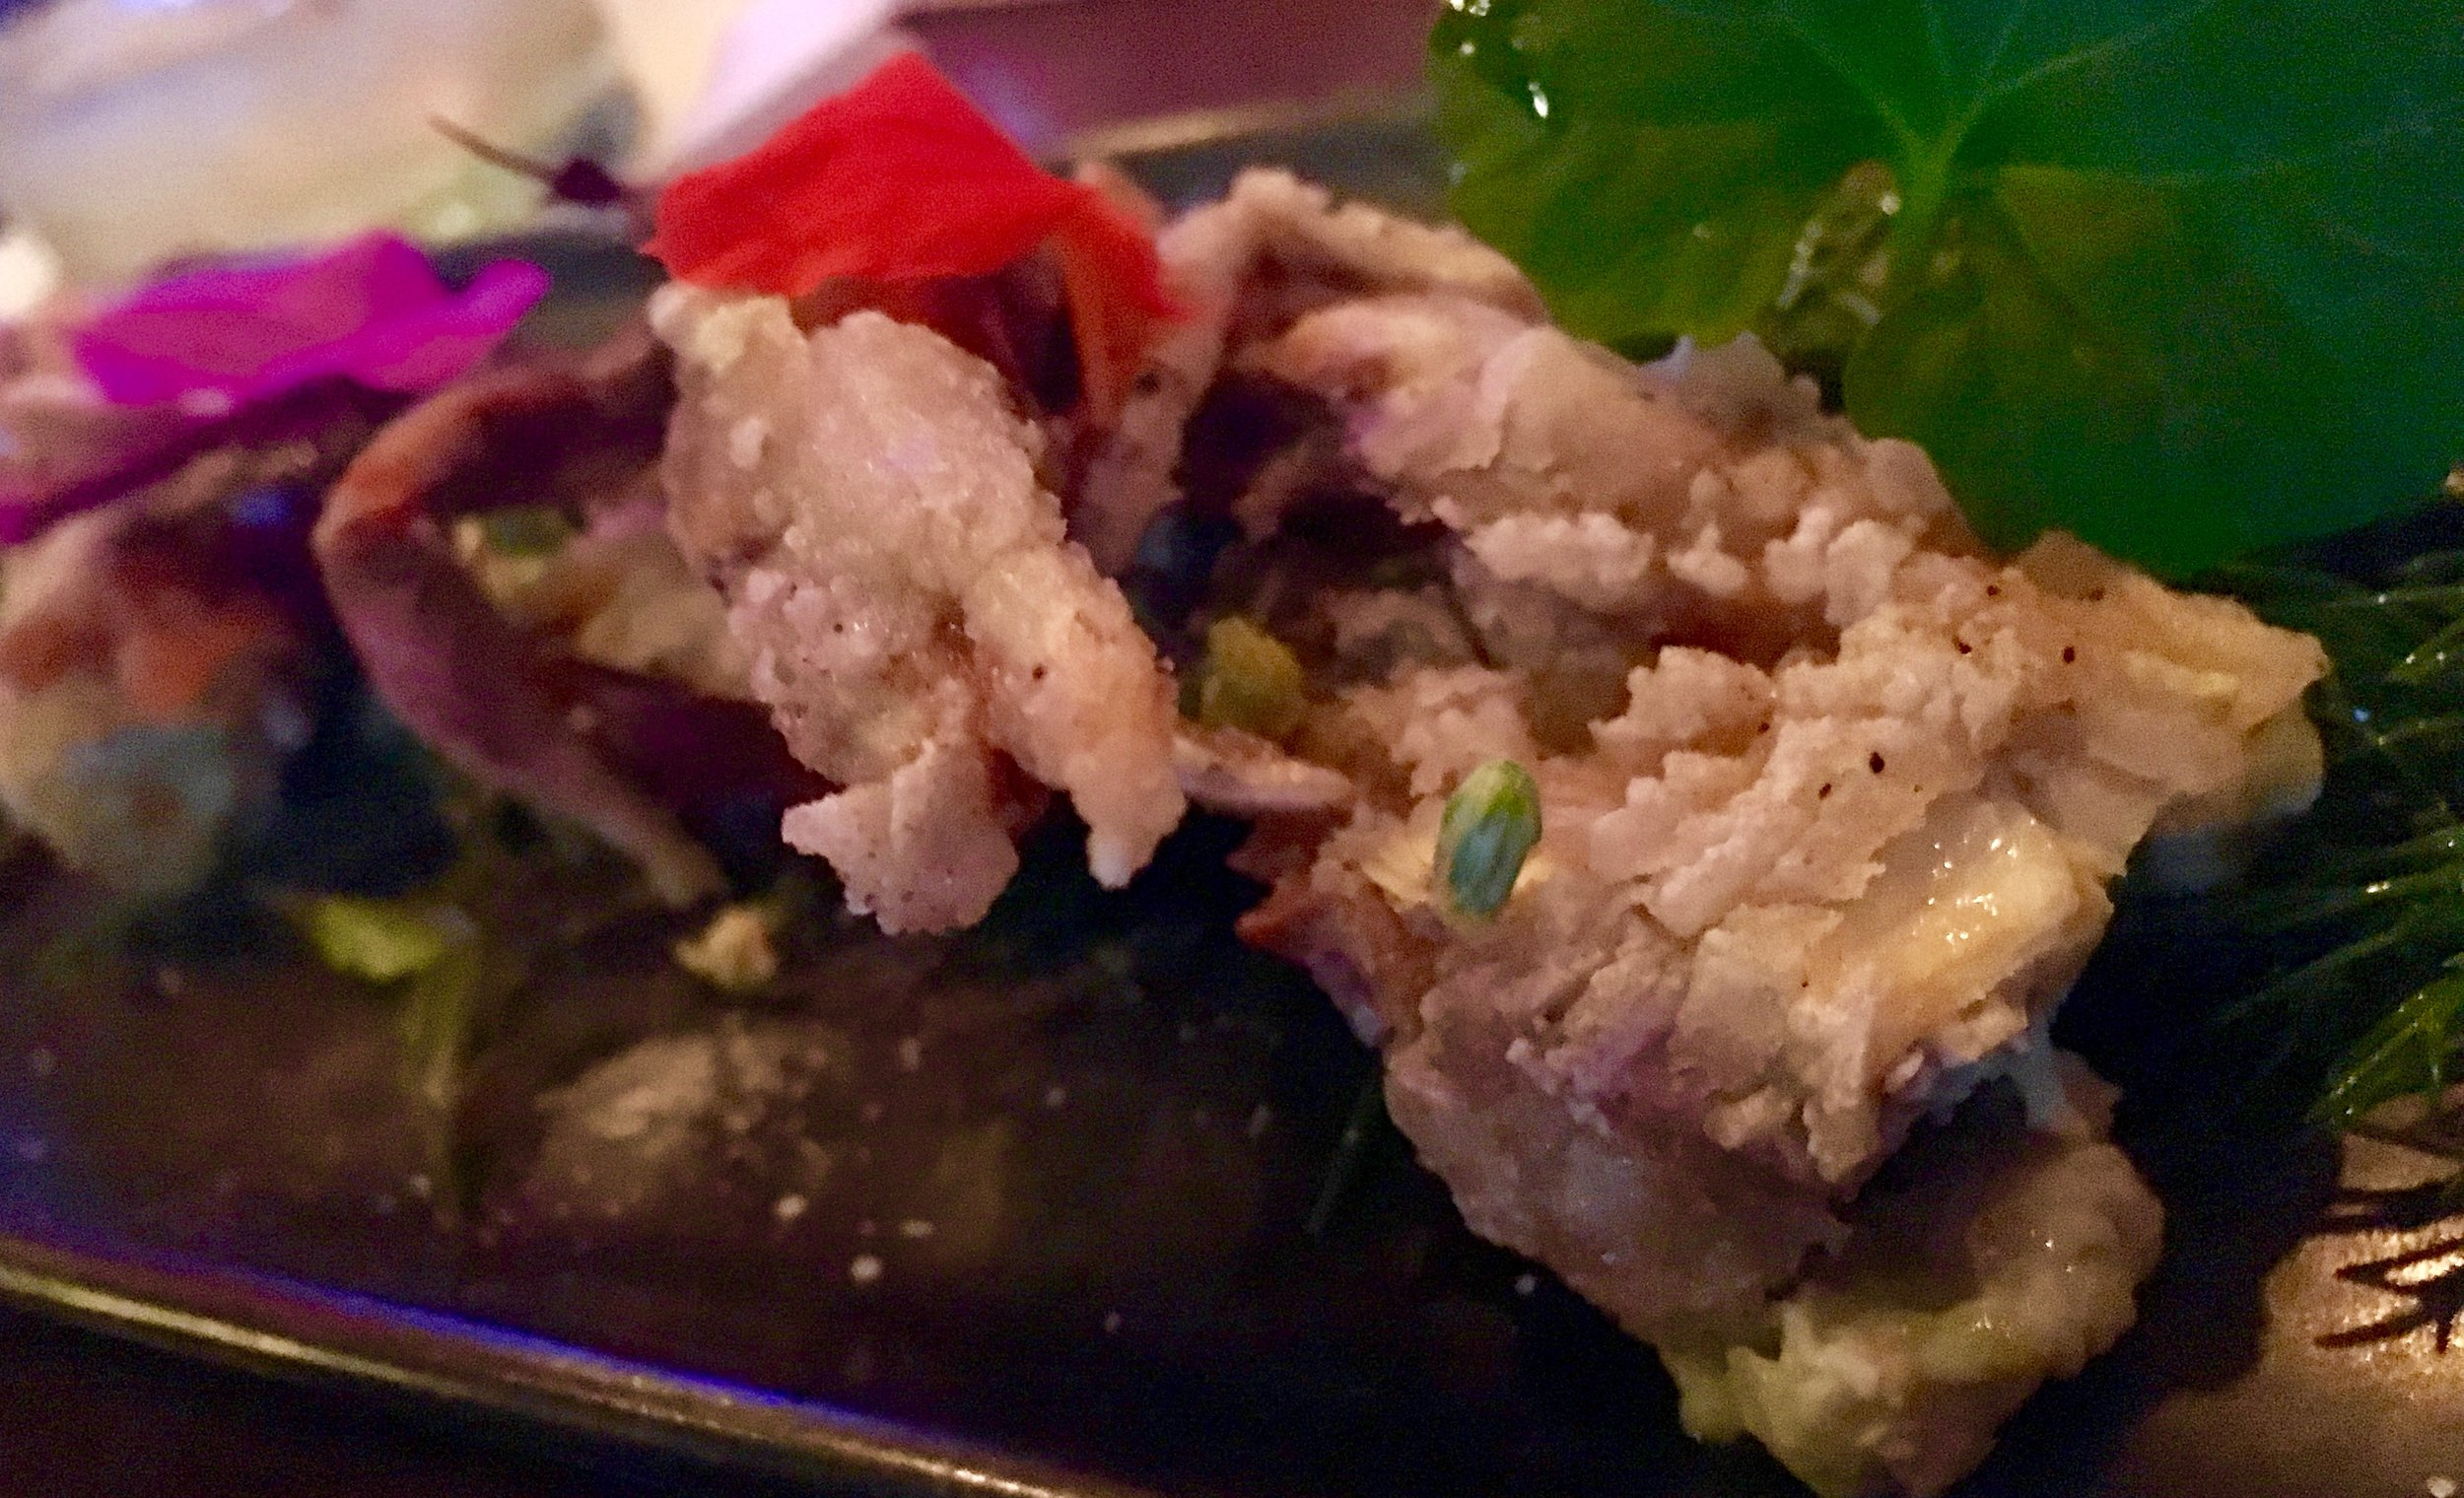 Salt-and-pepper softshell crab with herb salad from the Seito Sushi garden, nuc cham dressing, garden peppers and purple snow peas at the omakase dinner at Seito Sushi